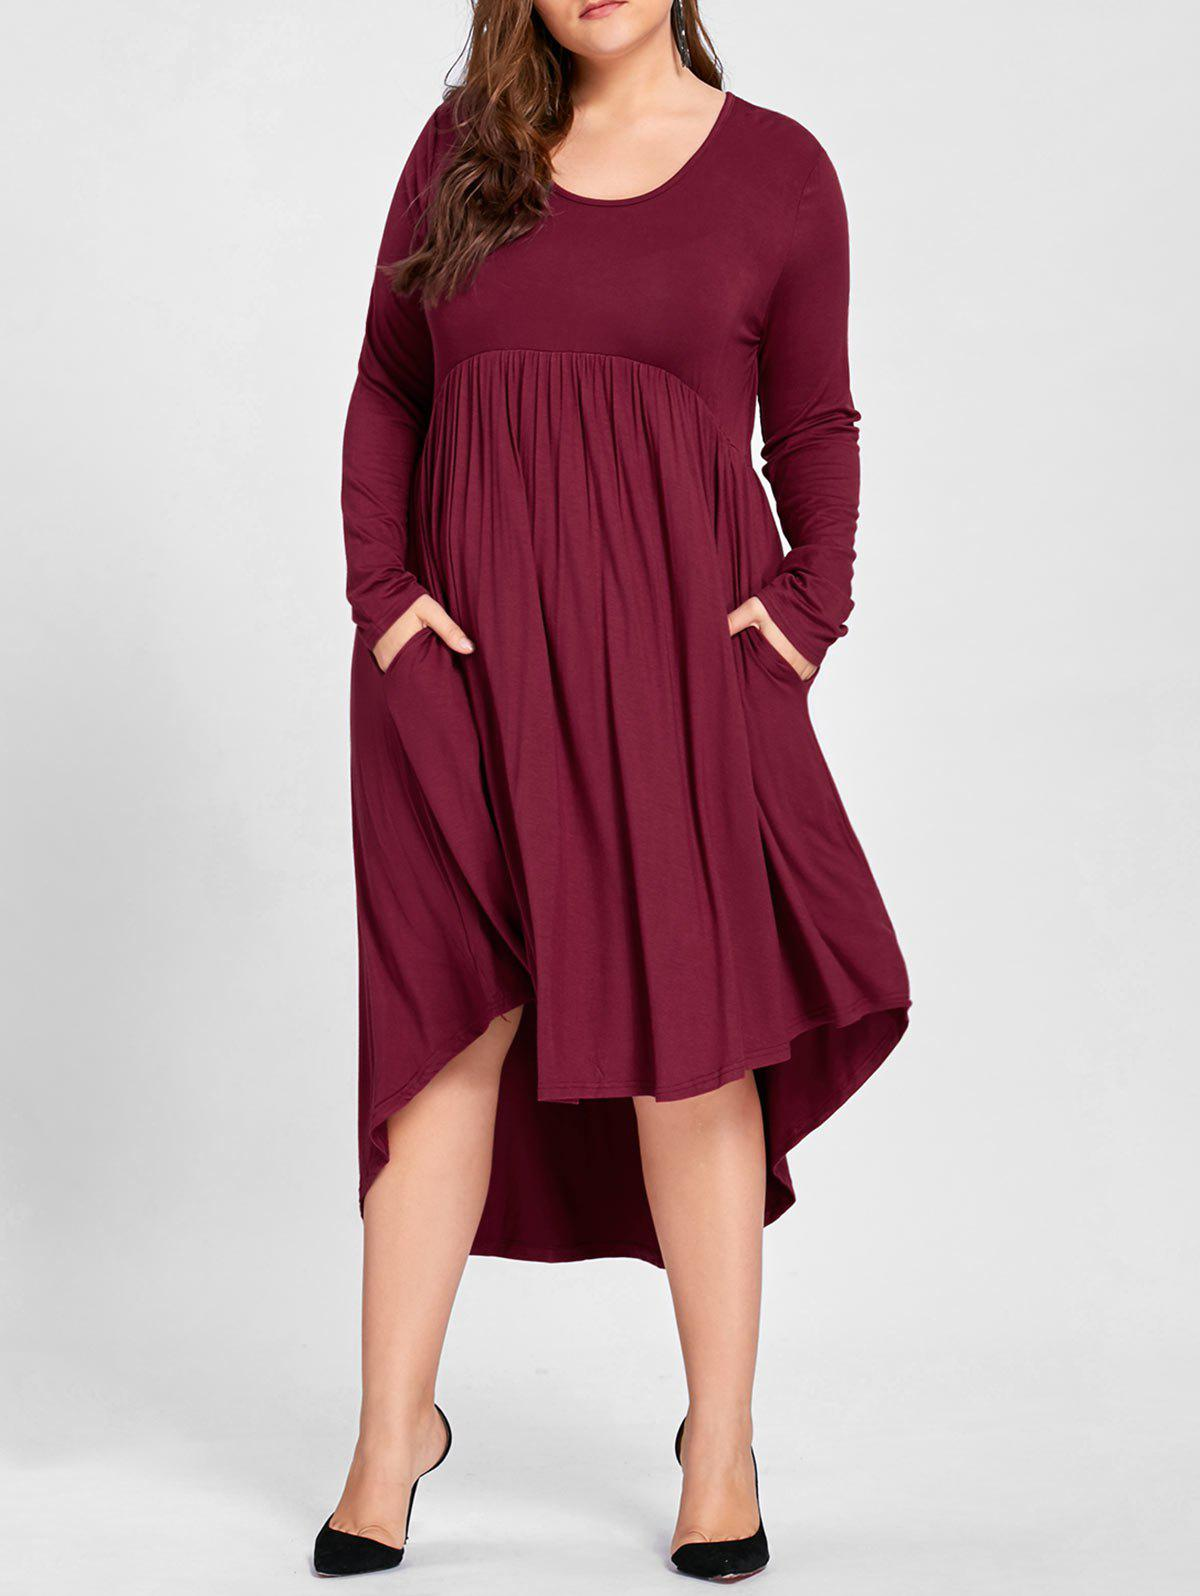 Plus Size Empire Waist High Low T Shirt DressWOMEN<br><br>Size: 3XL; Color: CLARET; Style: Casual; Material: Cotton,Polyester; Silhouette: Asymmetrical; Dresses Length: Mid-Calf; Neckline: Round Collar; Sleeve Length: Long Sleeves; Pattern Type: Solid; With Belt: No; Season: Fall; Weight: 0.5000kg; Package Contents: 1 x Dress;